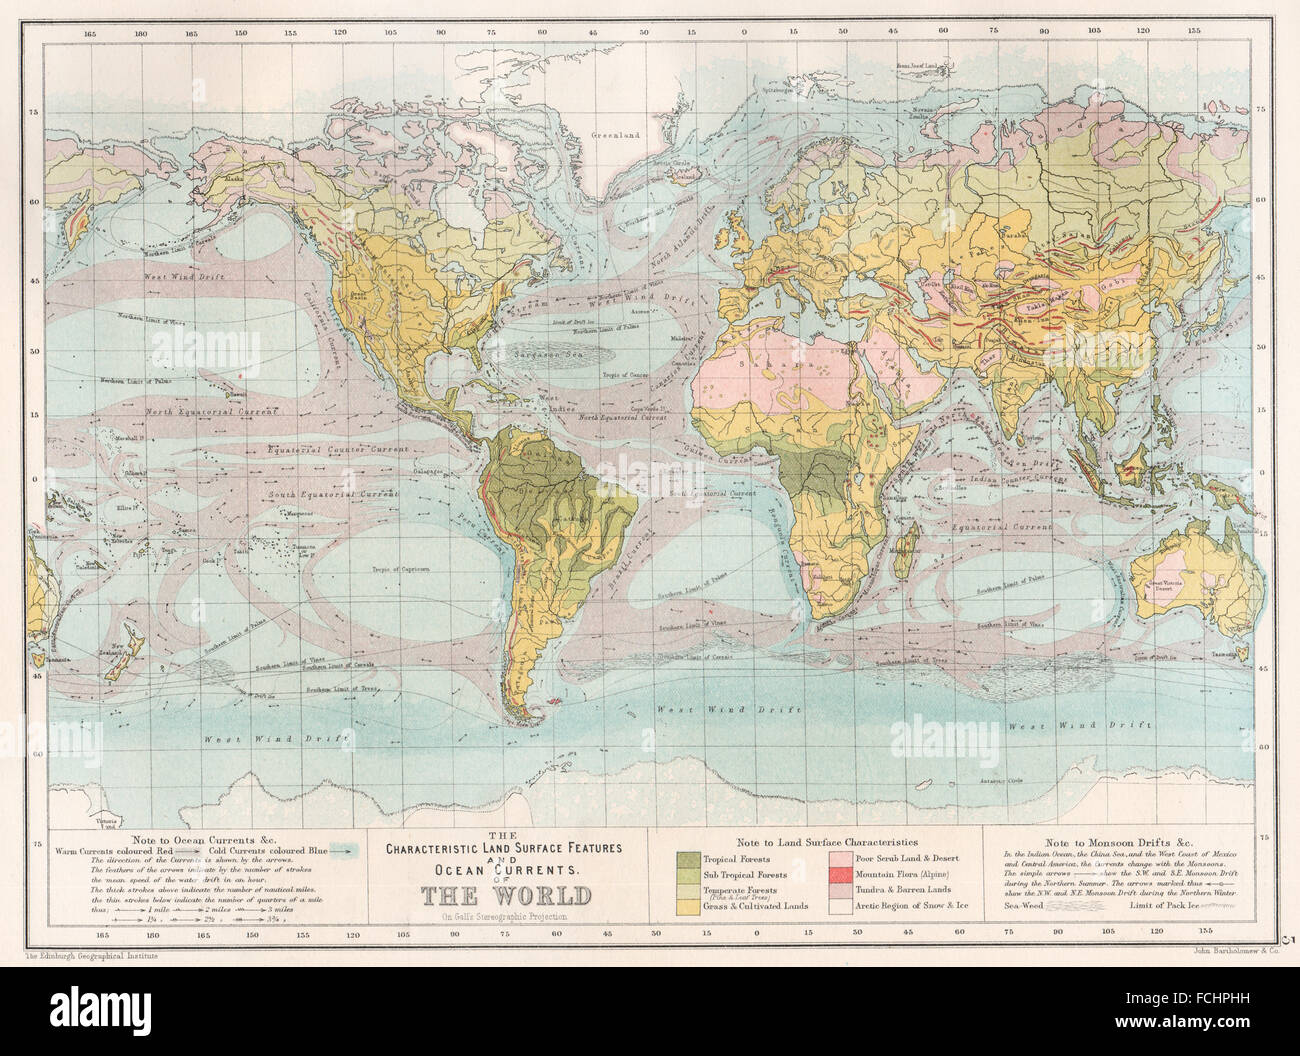 World land surface features ocean currents bartholomew 1891 world land surface features ocean currents bartholomew 1891 antique map gumiabroncs Choice Image